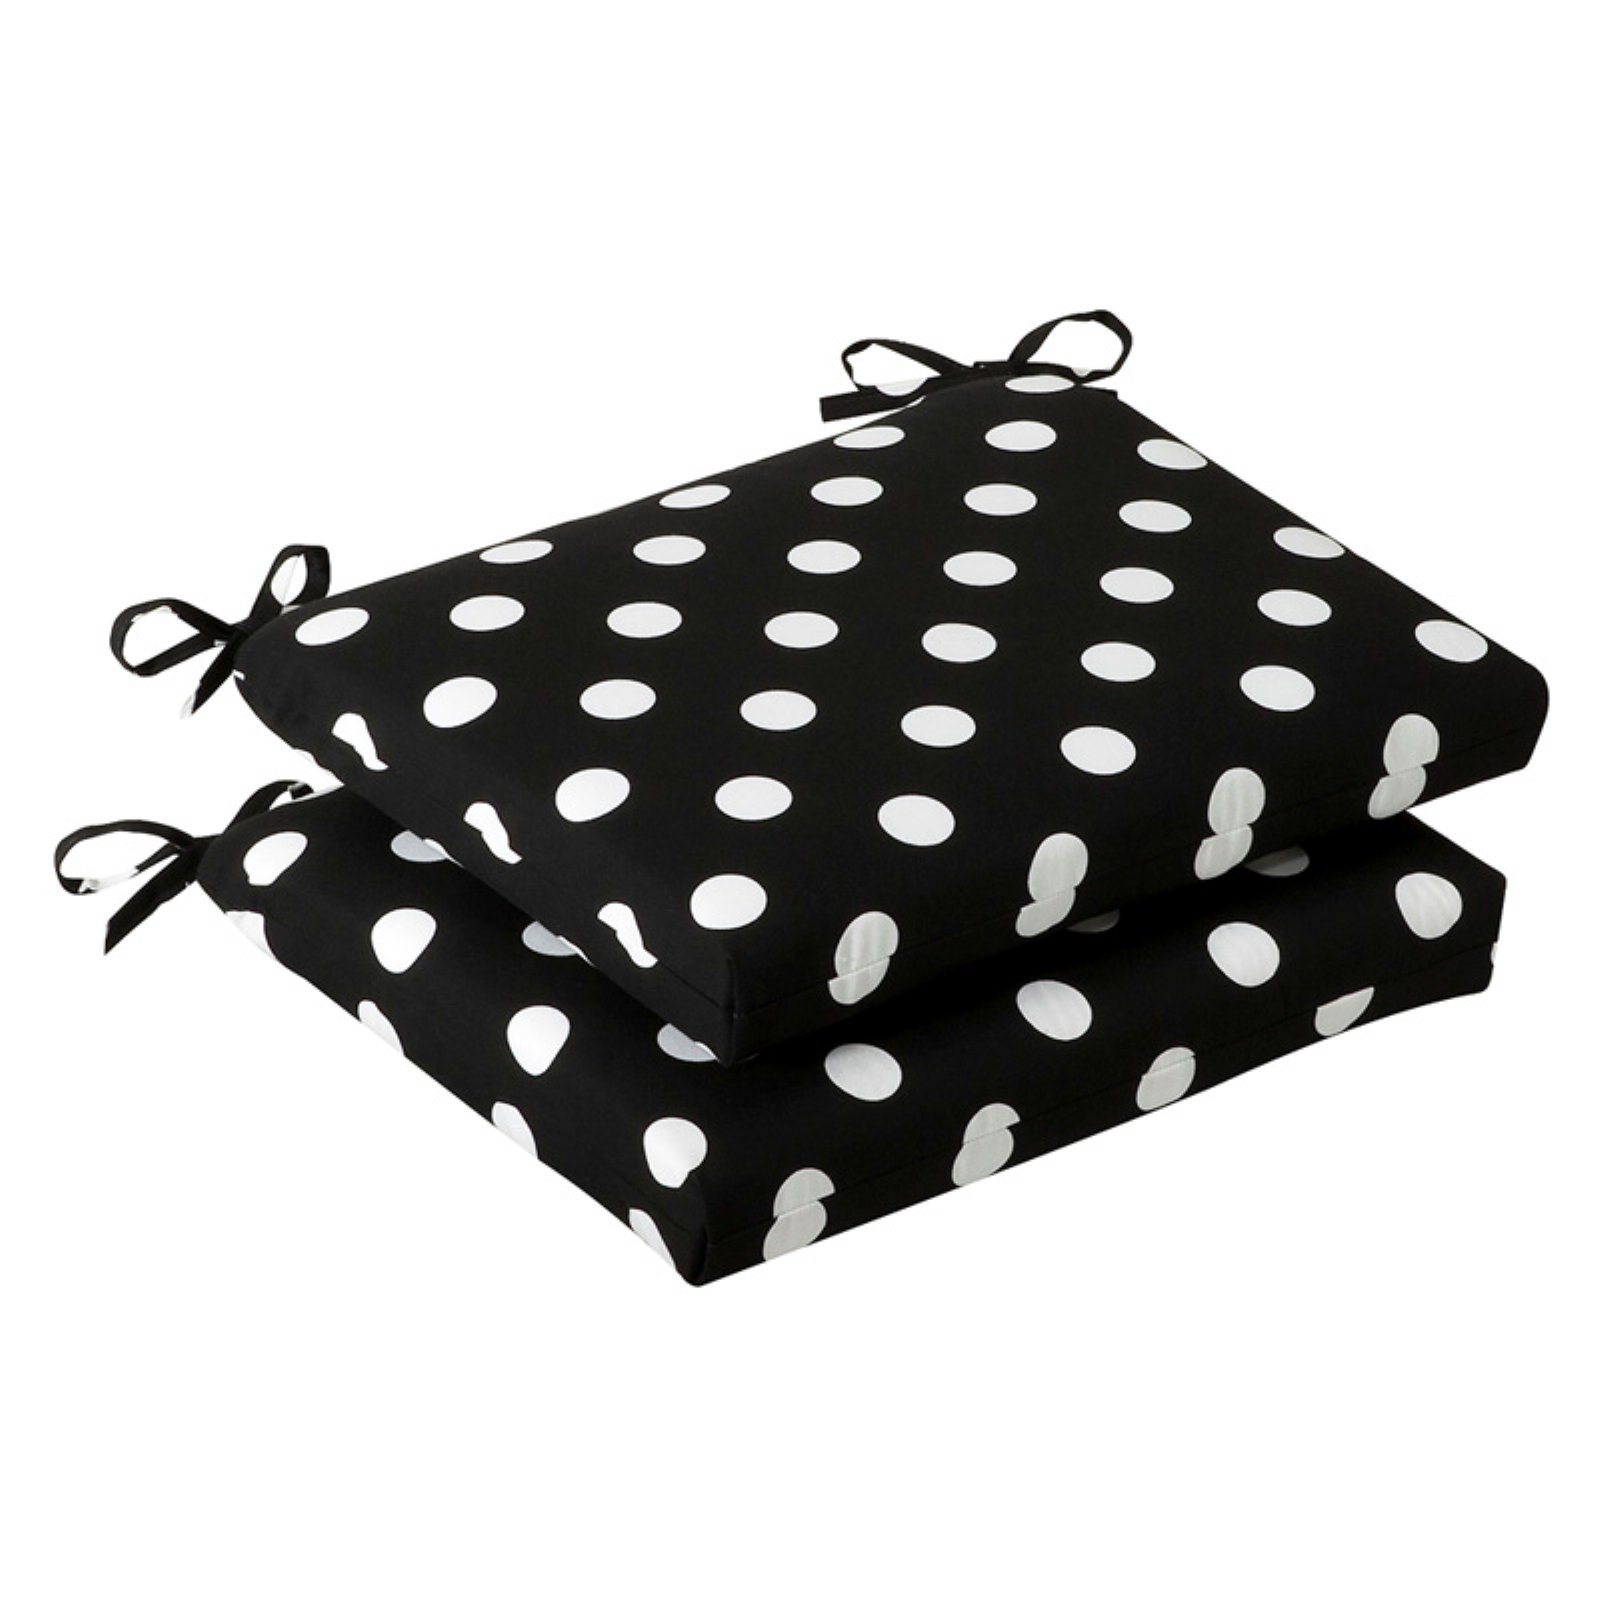 Pillow Perfect Outdoor/ Indoor Polka Dot Black Squared Corners Seat Cushion (Set of 2)